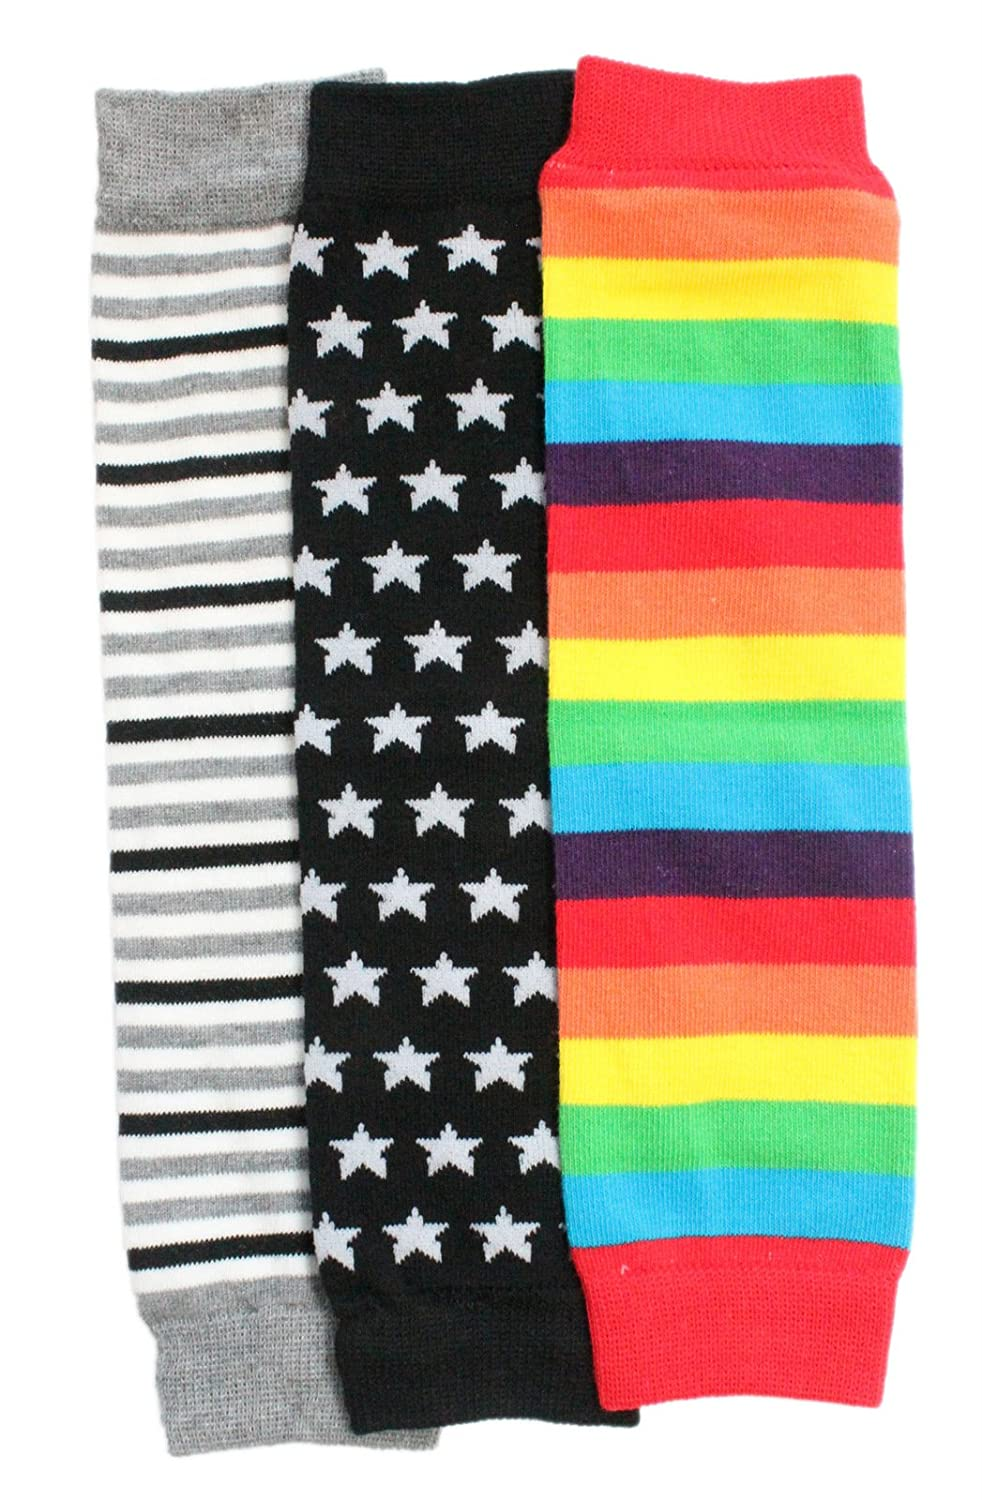 Baby Toddler Boy Leg Warmers Pack of 3 - Black Stars Grey Rainbow Stripes